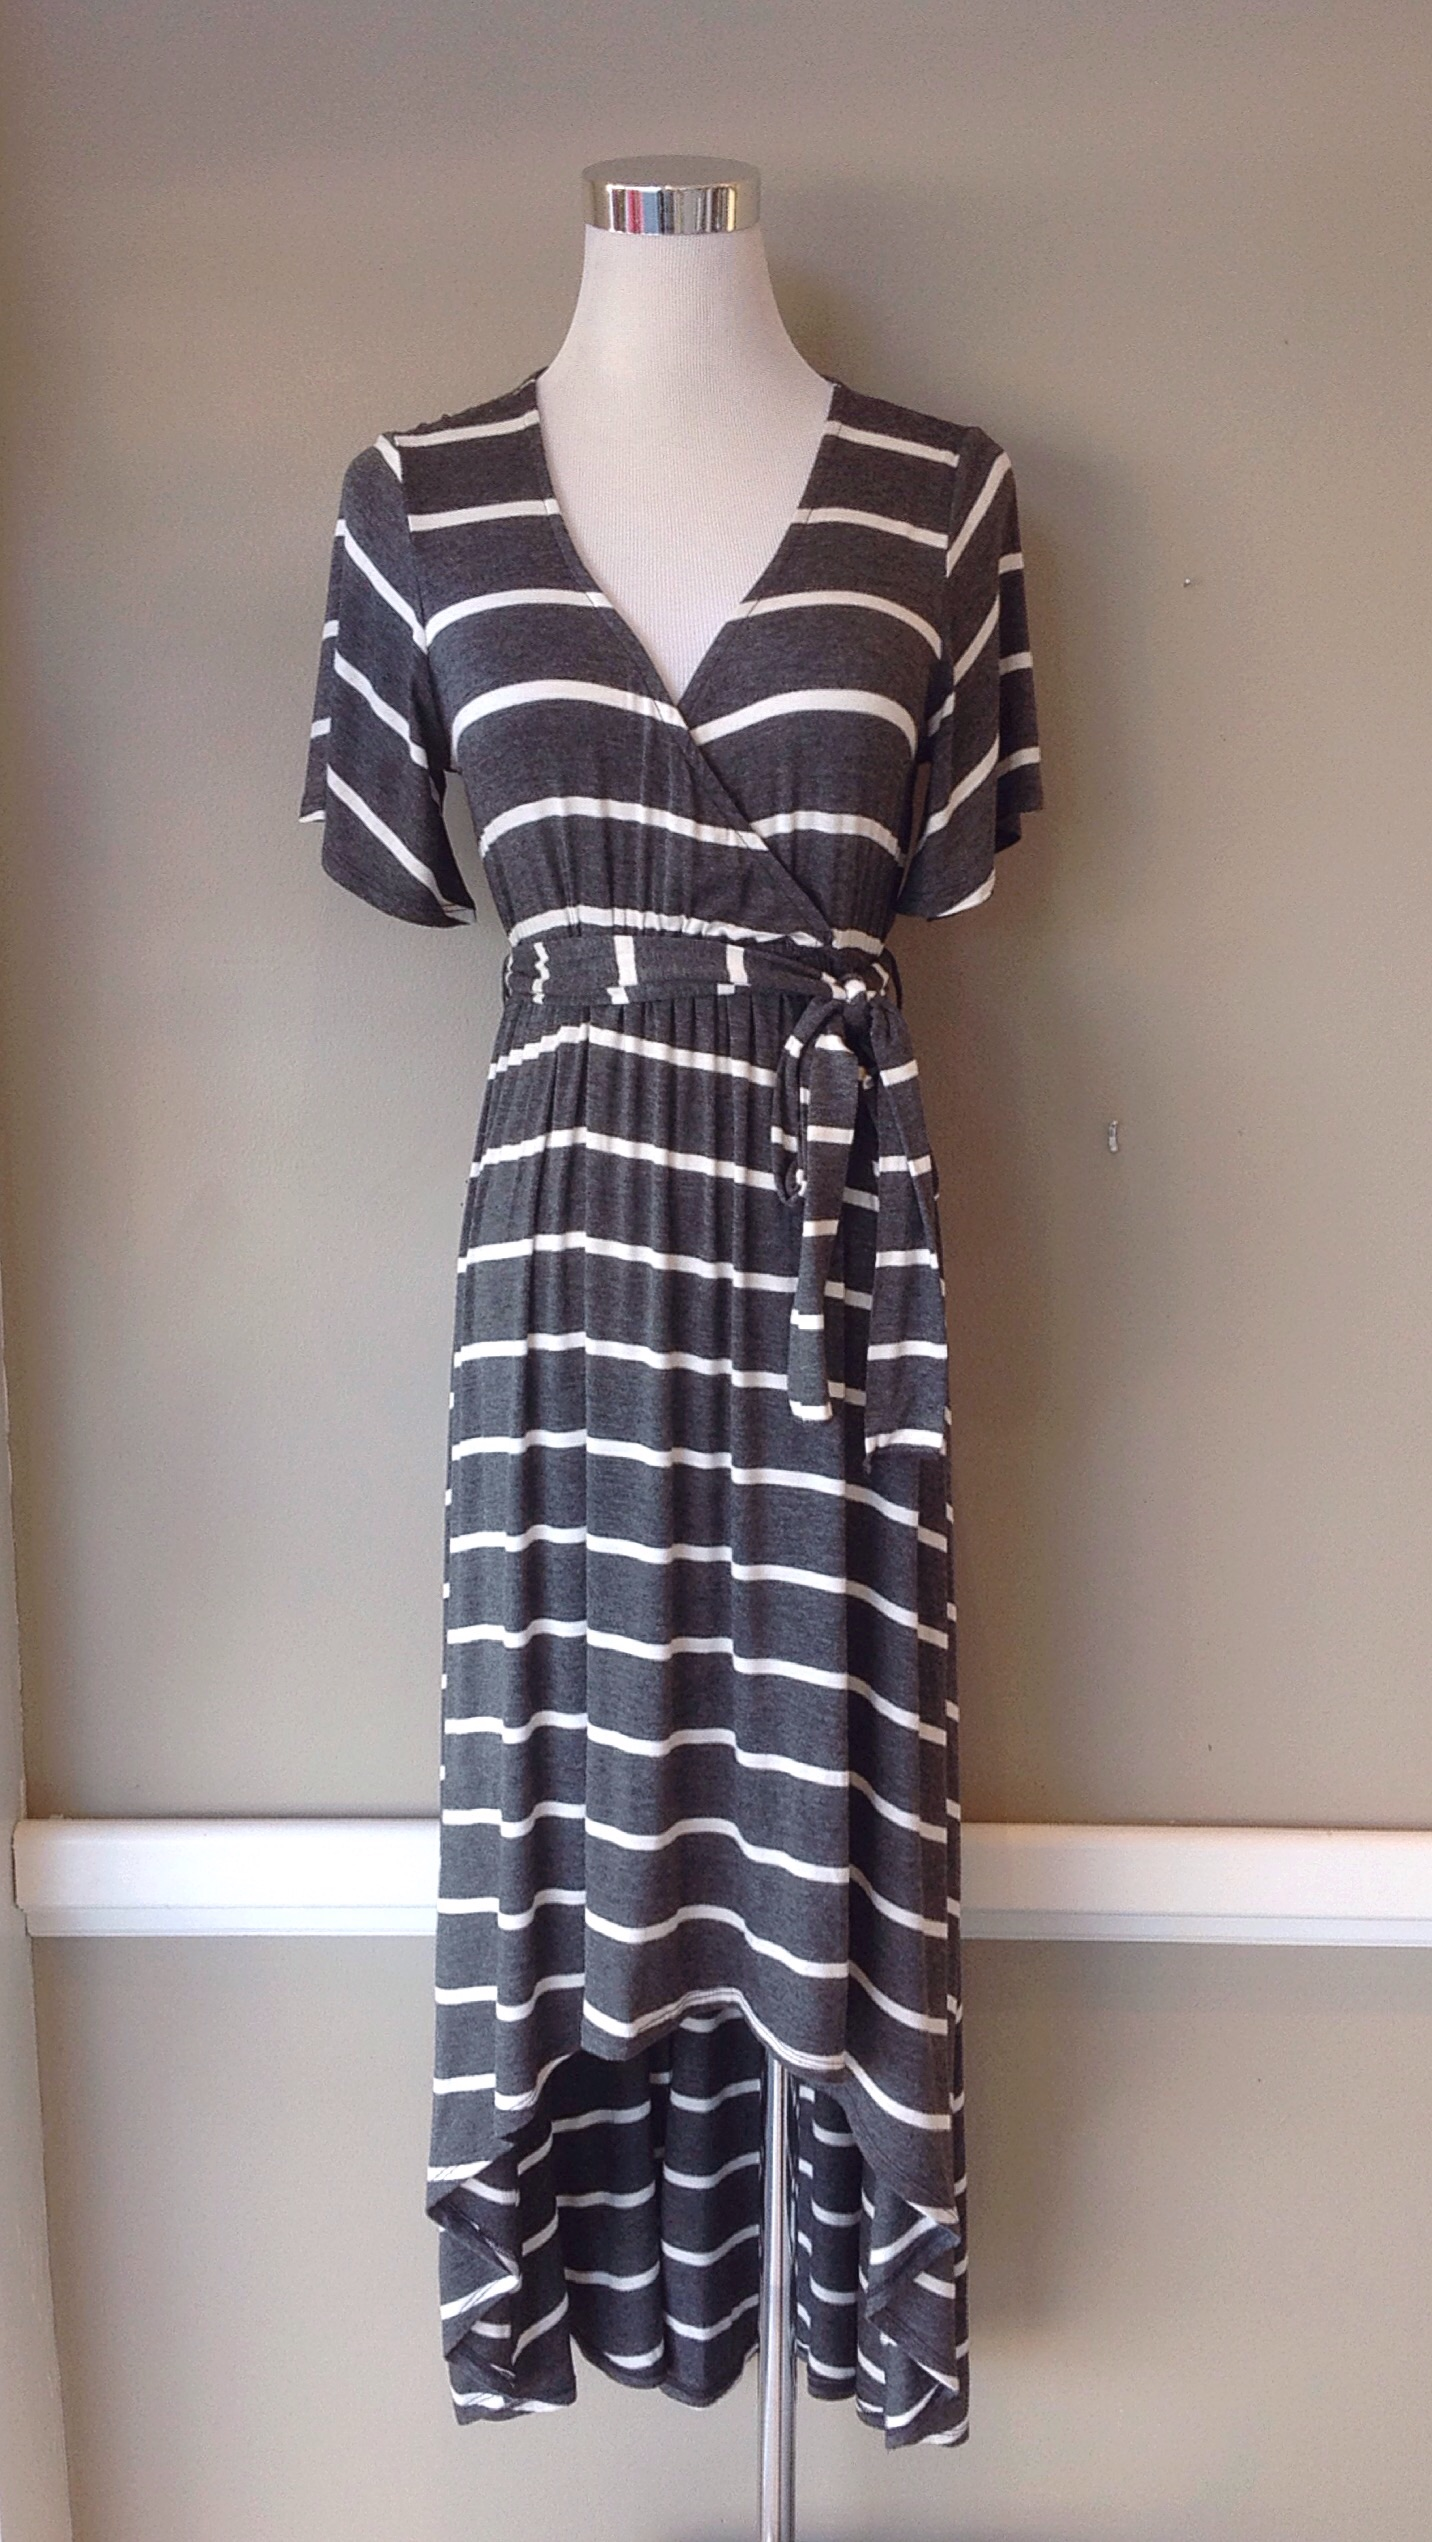 Knit maxi dress with high-low hem and waist tie in grey and off-white stripe, $42